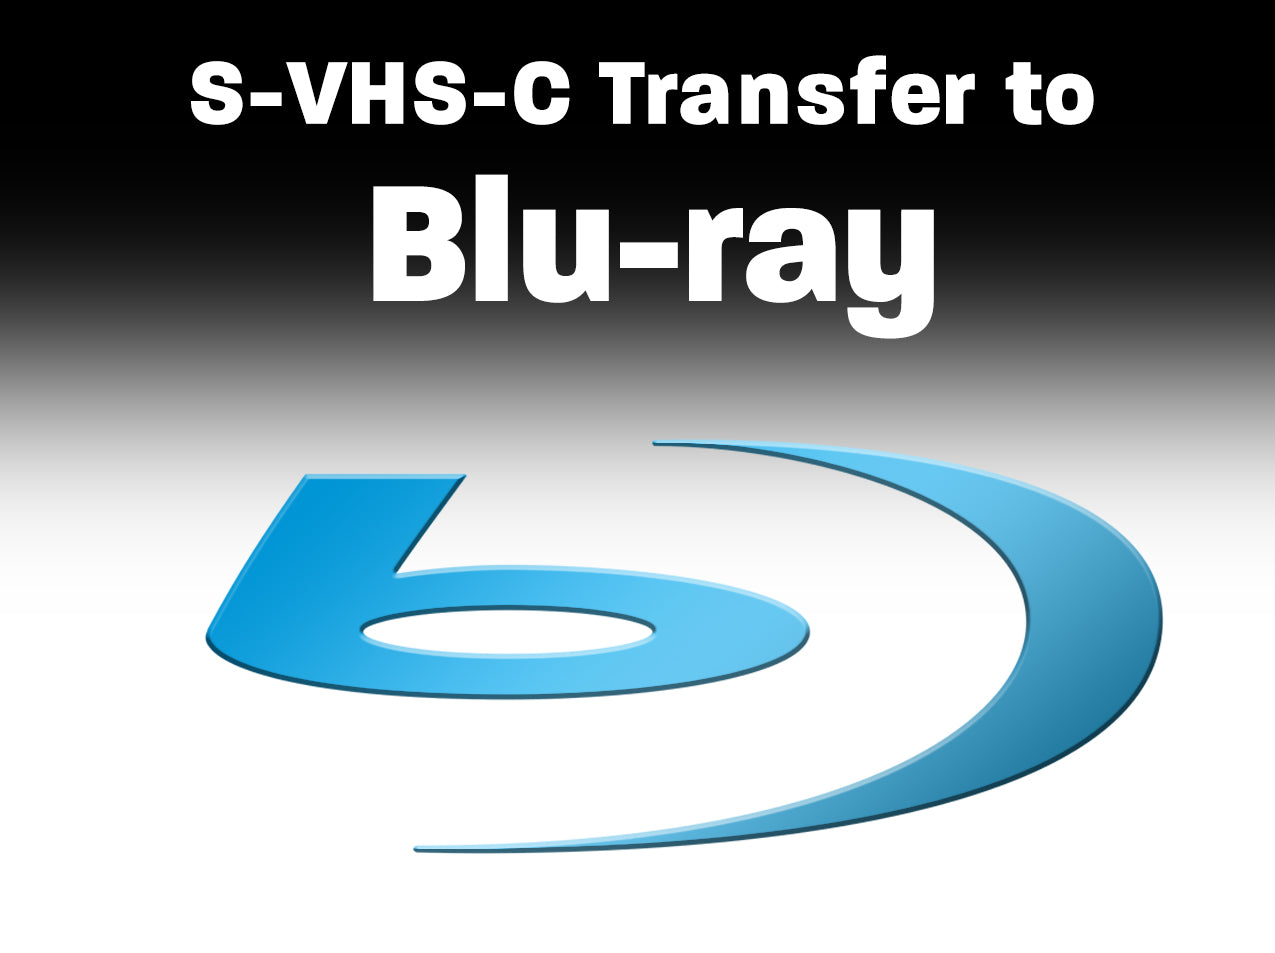 S-VHS, VHS, VHS-C to Blu-ray